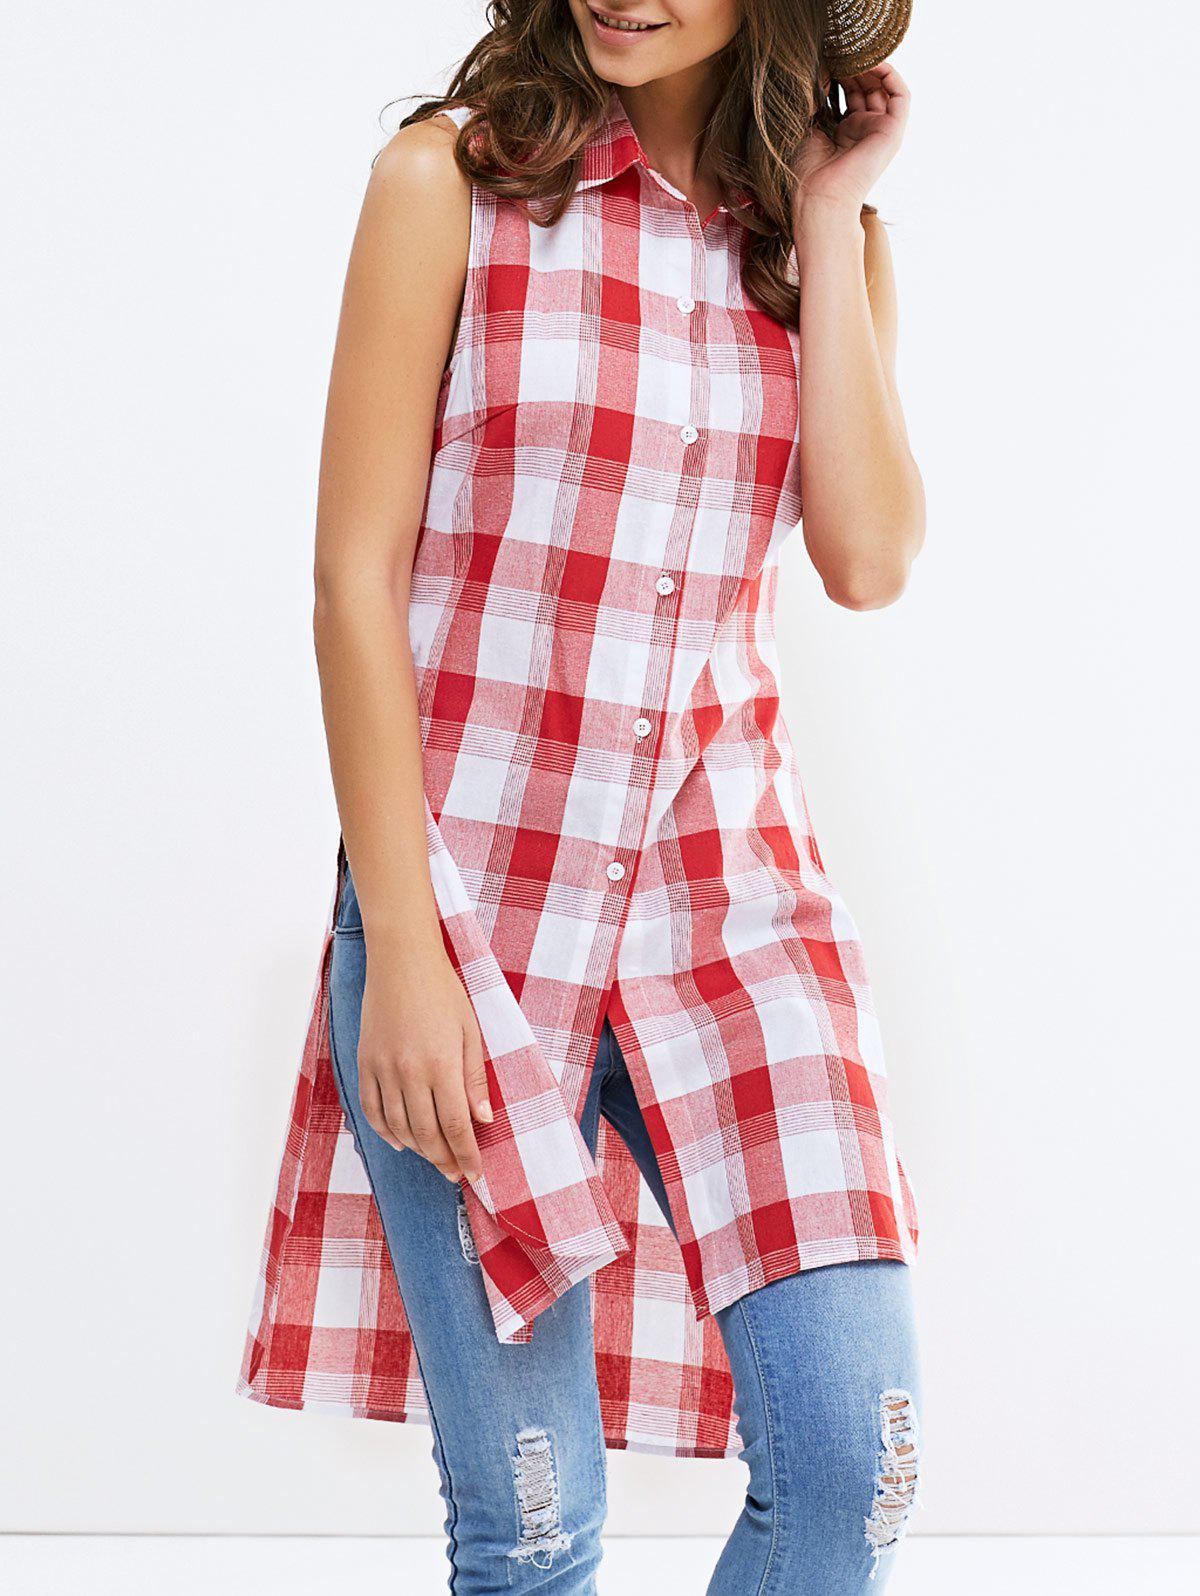 Fashionable Shirt Collar Broadside Slit Sleeveless Lattice Shirt For Woman - RED/WHITE XL